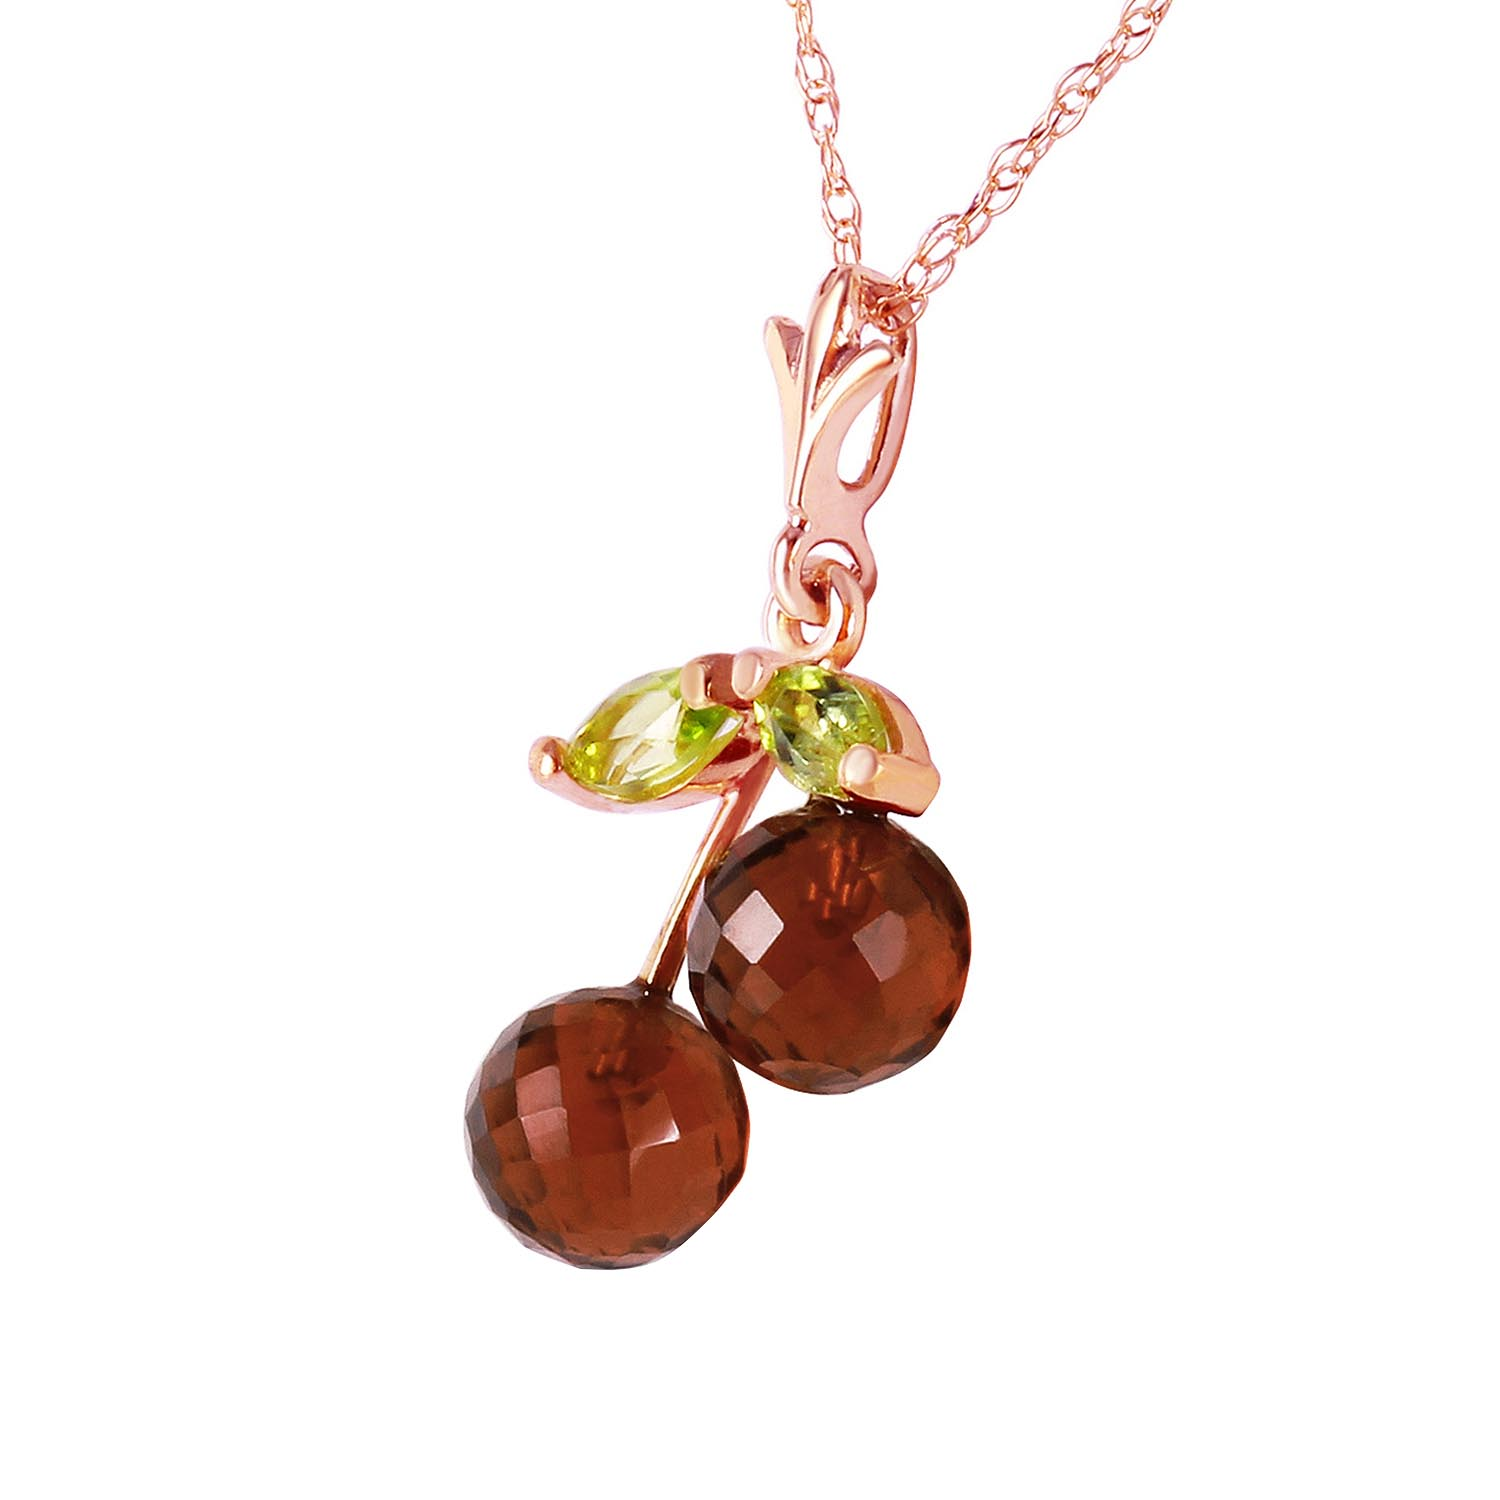 Garnet and Peridot Cherry Drop Pendant Necklace 1.45ctw in 14K Rose Gold